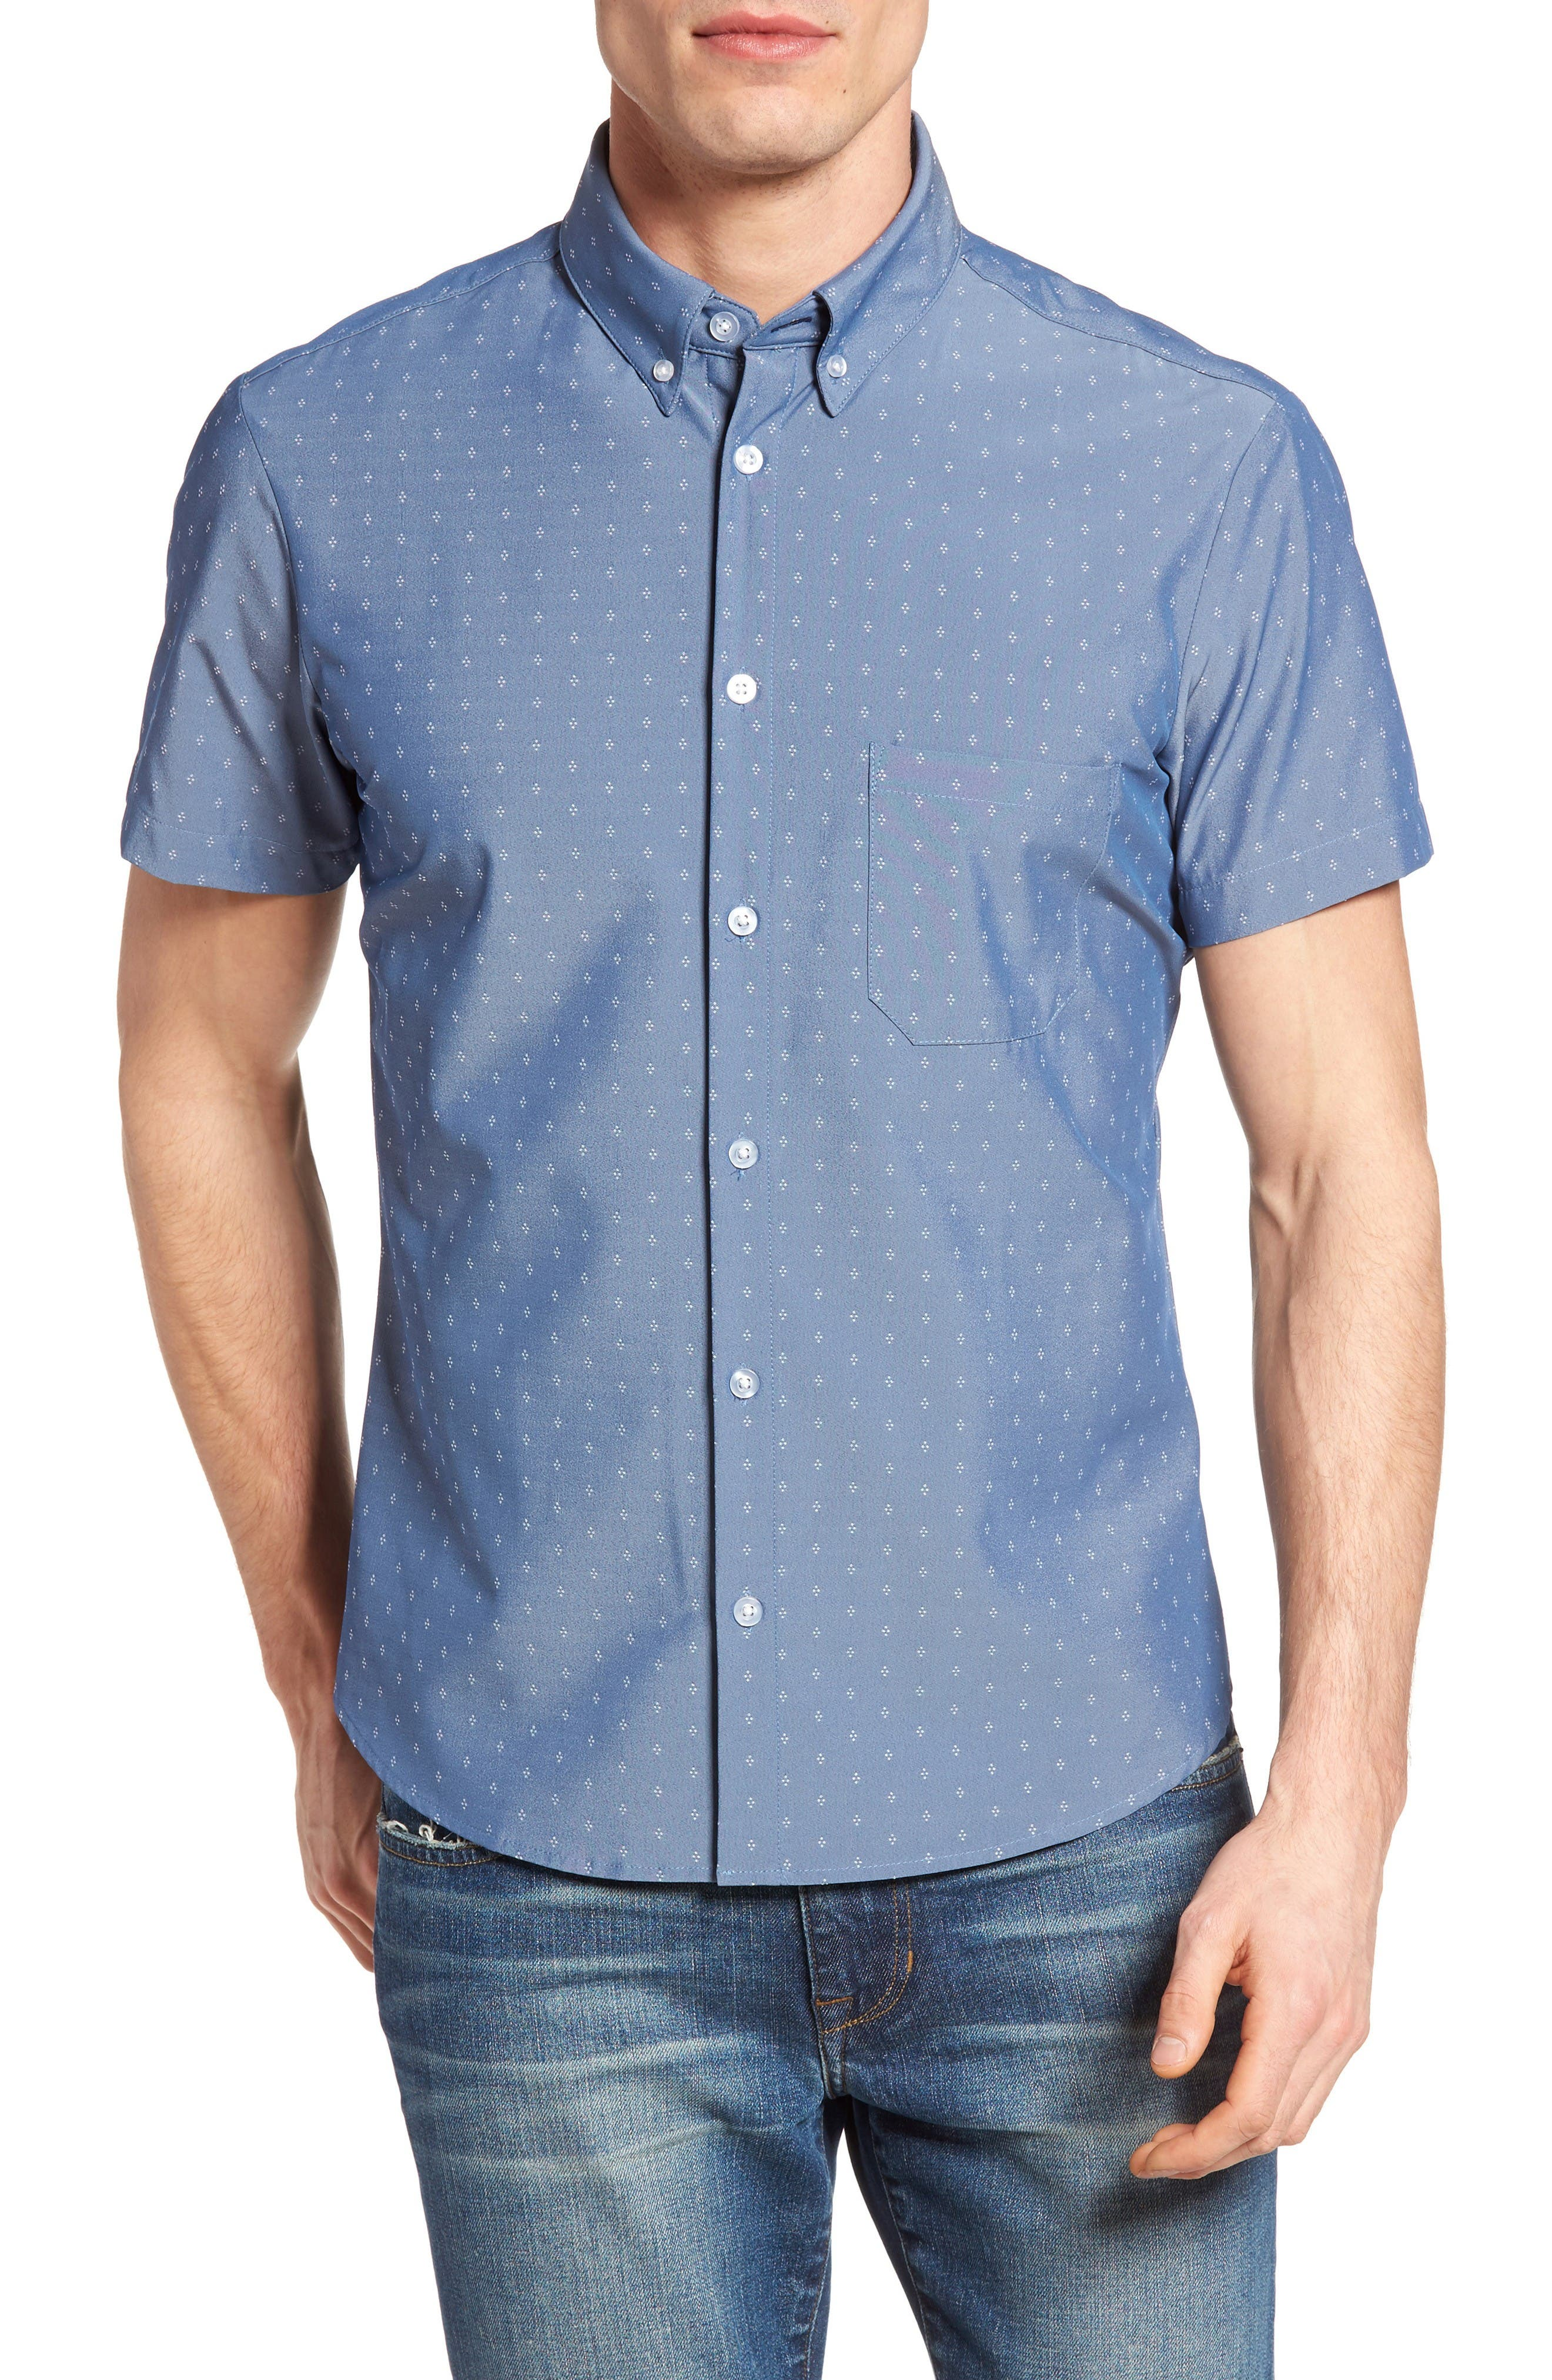 Alternate Image 1 Selected - Mizzen+Main Kingston Poseidon Slim Fit Print Performance Sport Shirt